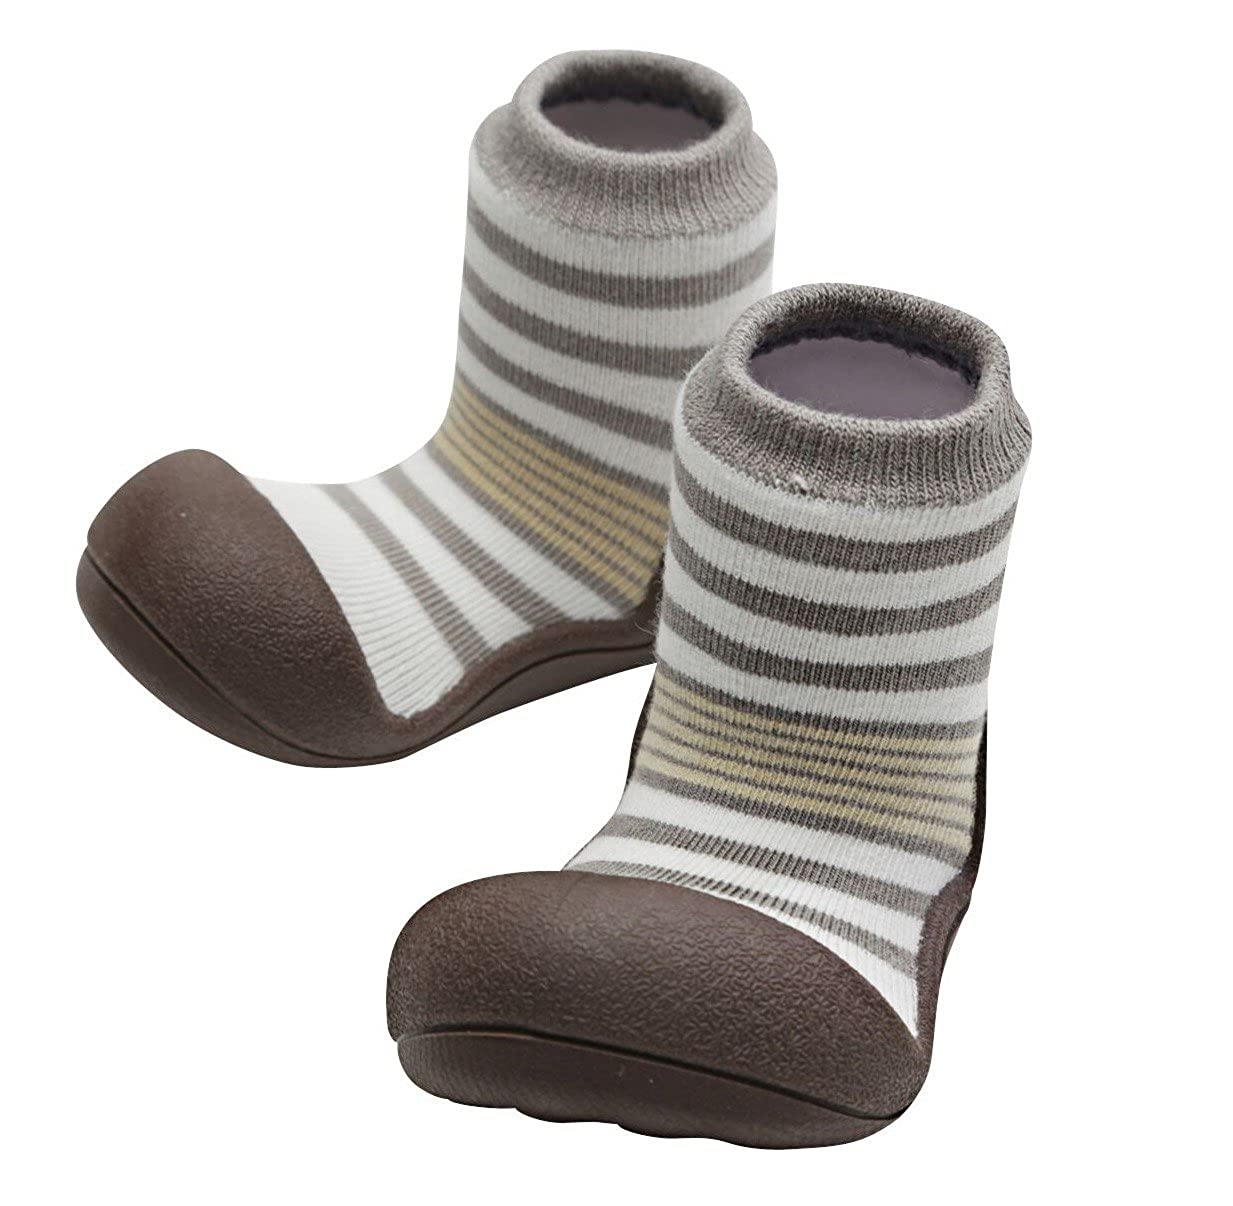 Attipas Baby Shoes Socks Rubber Sole First Walker Soft Cotton Ideal Baby Registry Gifts